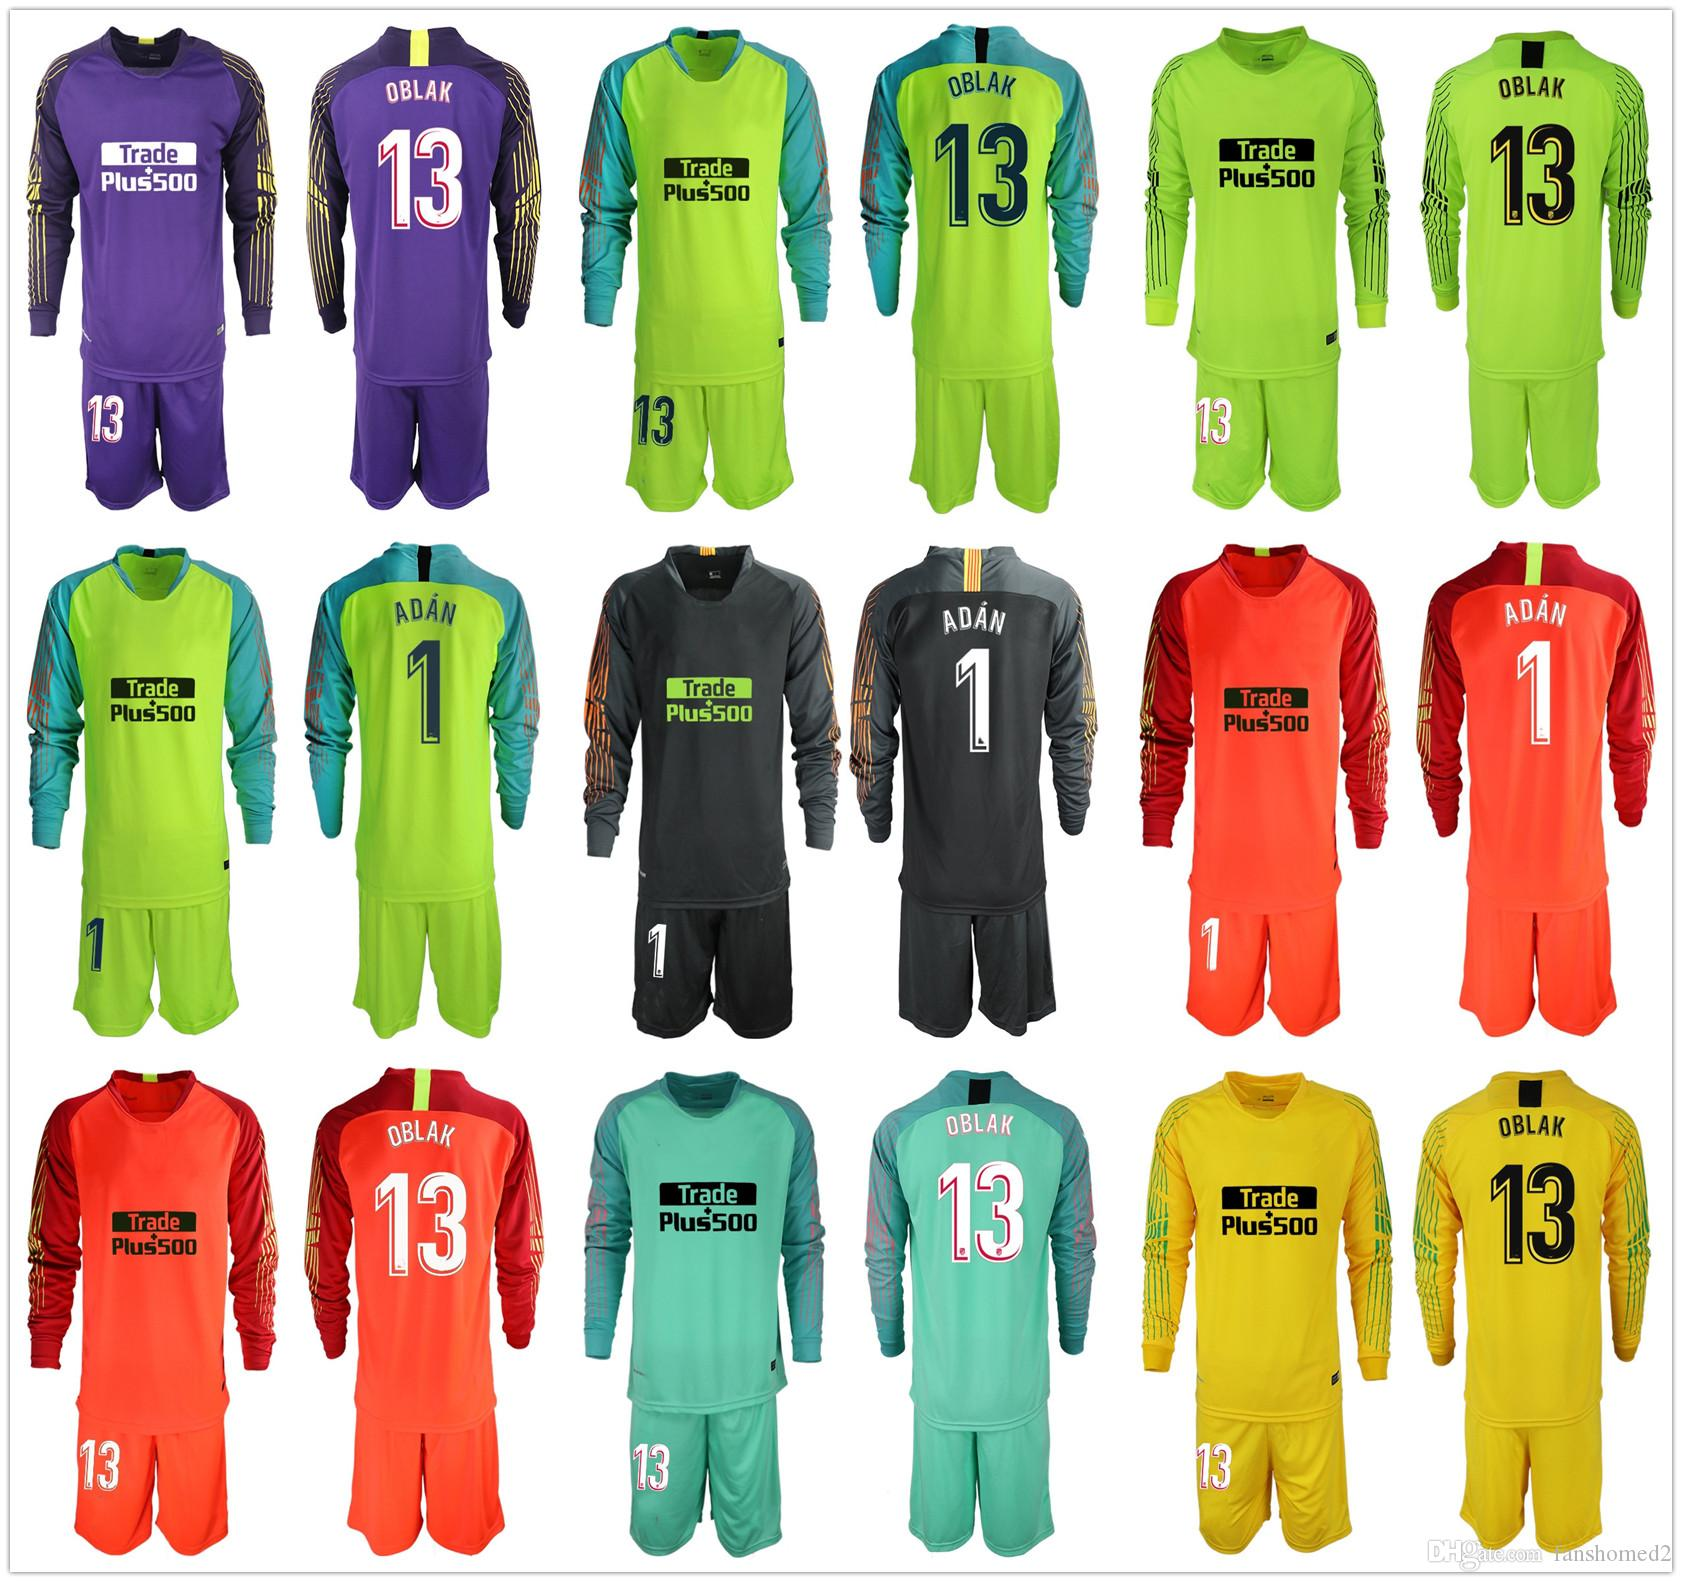 825f9c0ba 2019 2018 2019 Adults MEN Long Oblak Goalkeeper Jerseys  1 Adan Soccer Sets  13 Jan Oblak Adan GK Jerseys Football Goalie Uniform Suit Sets From  Fanshomed2